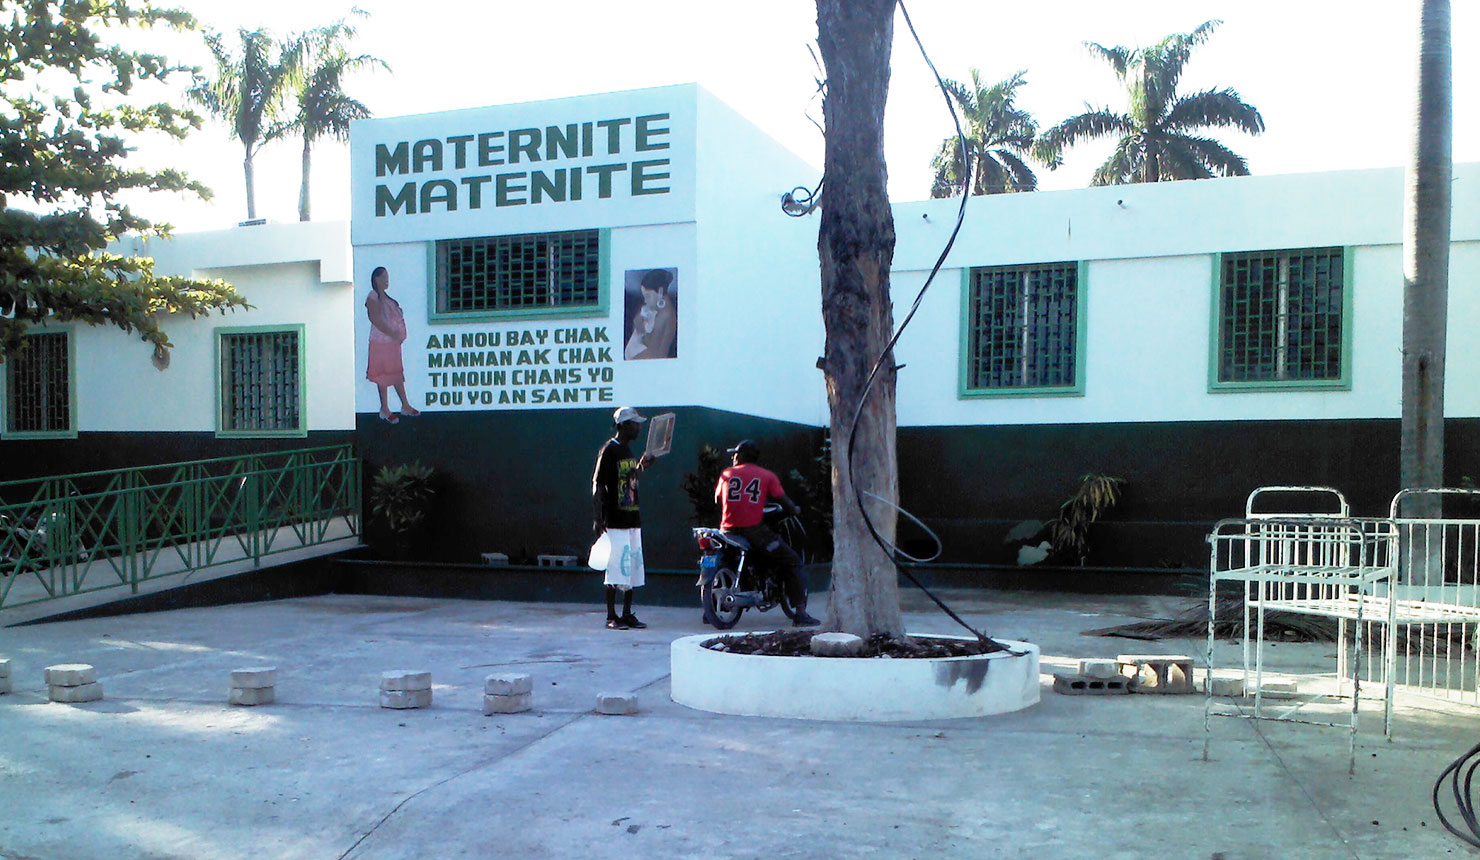 The maternity ward at the Hôpital Immaculate Conception in Haiti. (Photo courtesy of Alka Dev)